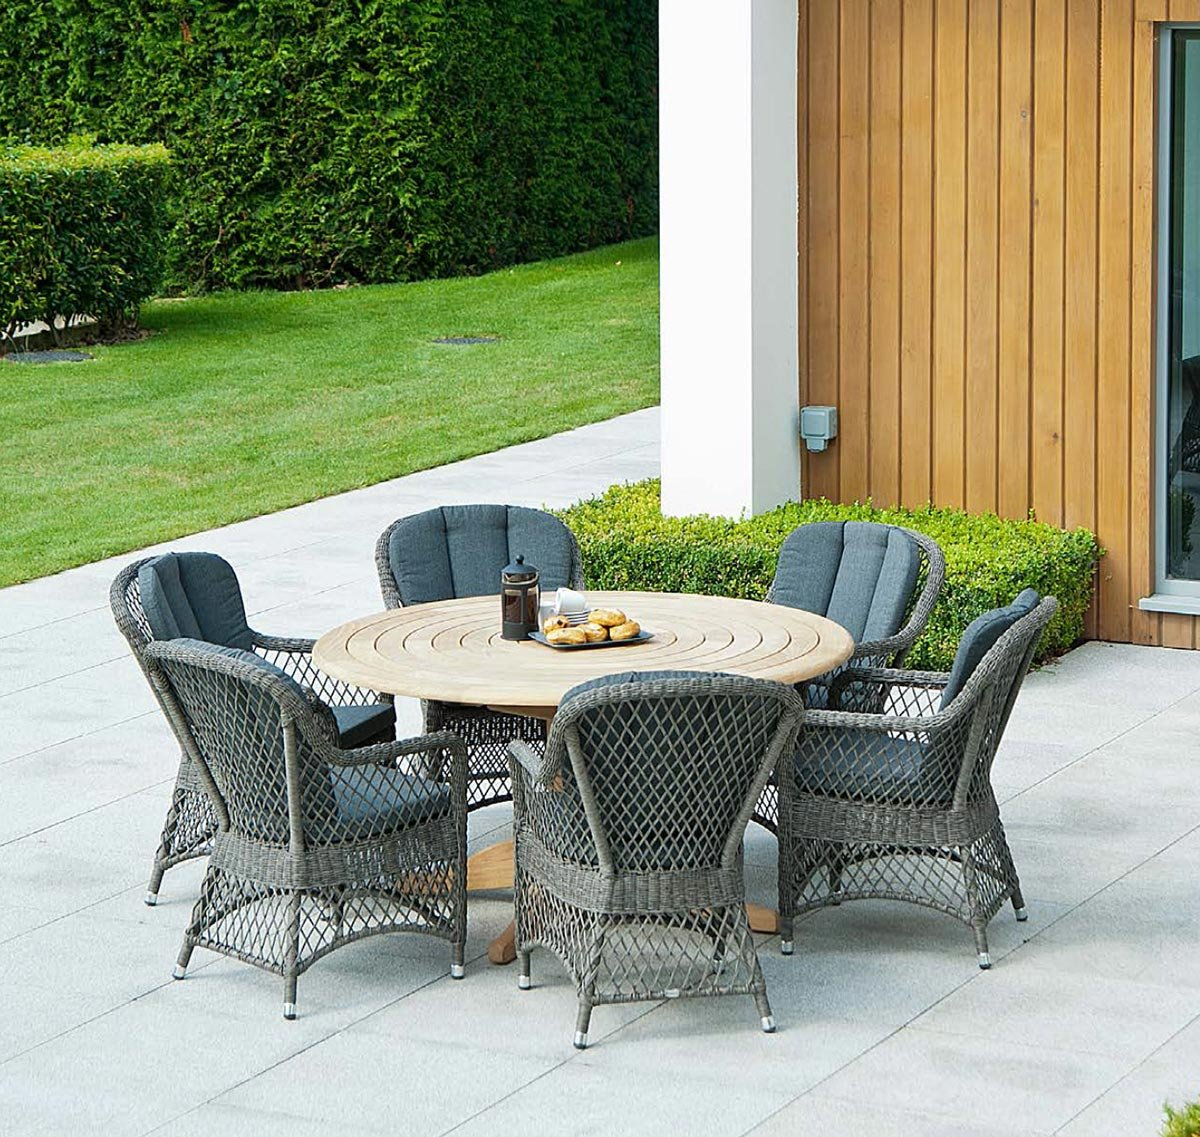 Alexander Rose Monte Carlo 6 Seat Open Weave Armchair Set with Roble Bengal Dining Table